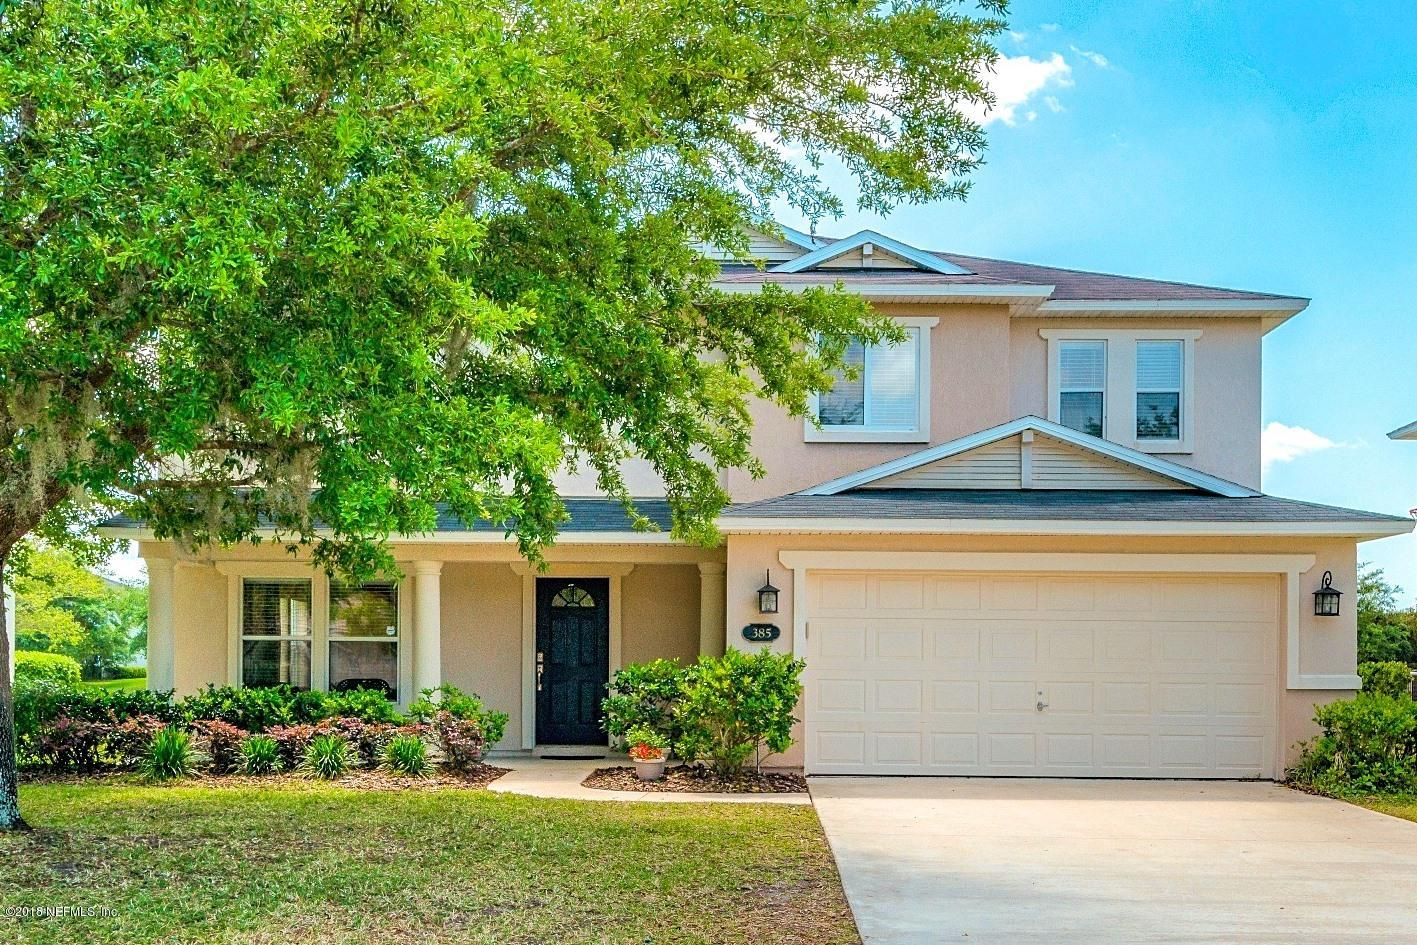 385 BOSTWICK, ST AUGUSTINE, FLORIDA 32092, 4 Bedrooms Bedrooms, ,3 BathroomsBathrooms,Residential - single family,For sale,BOSTWICK,939570